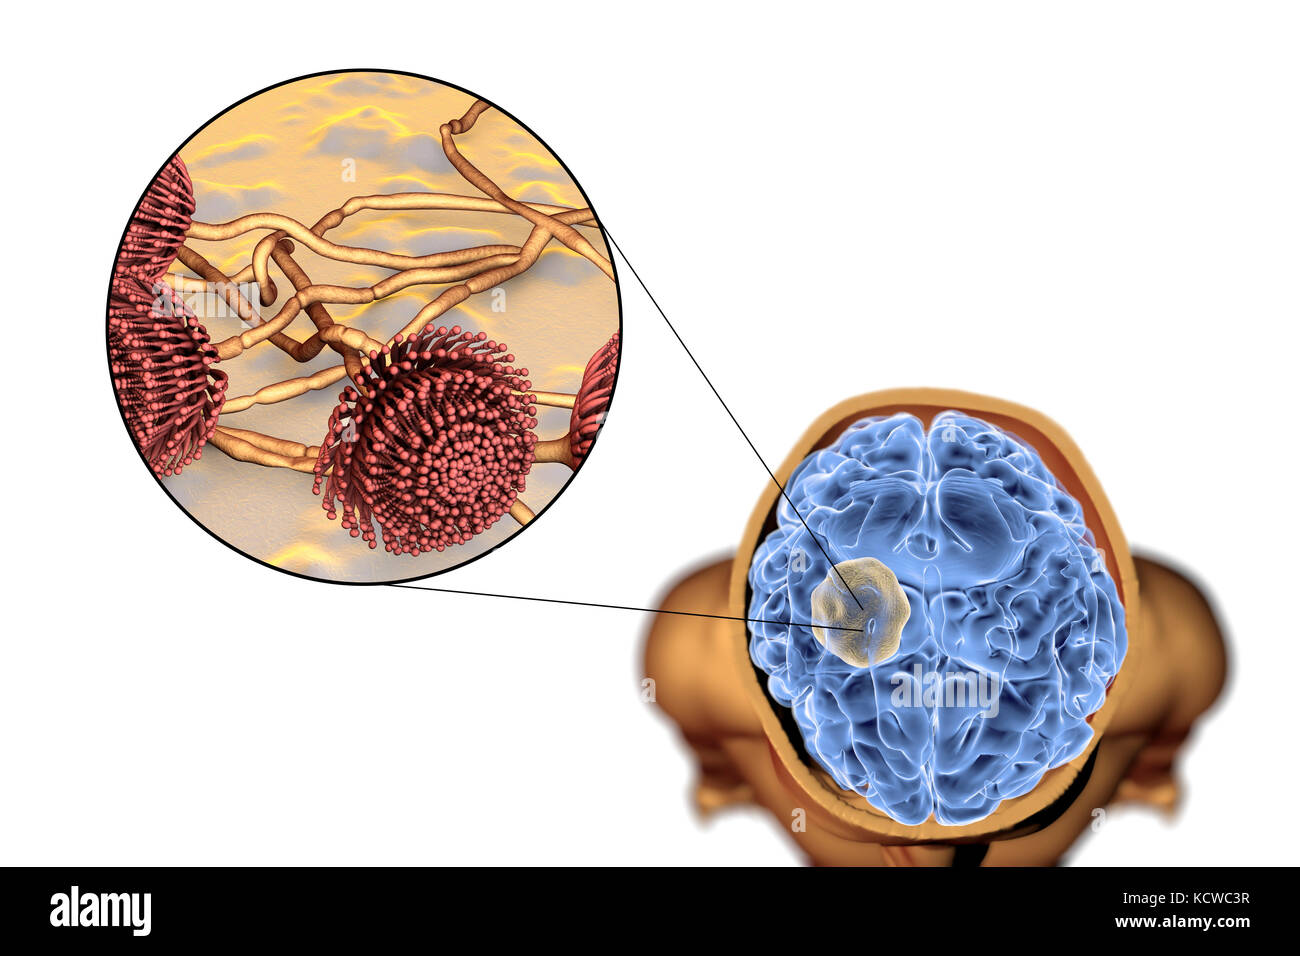 Aspergilloma of the brain and close-up view of Aspergillus fungi, computer illustration. Also known as mycetoma, - Stock Image